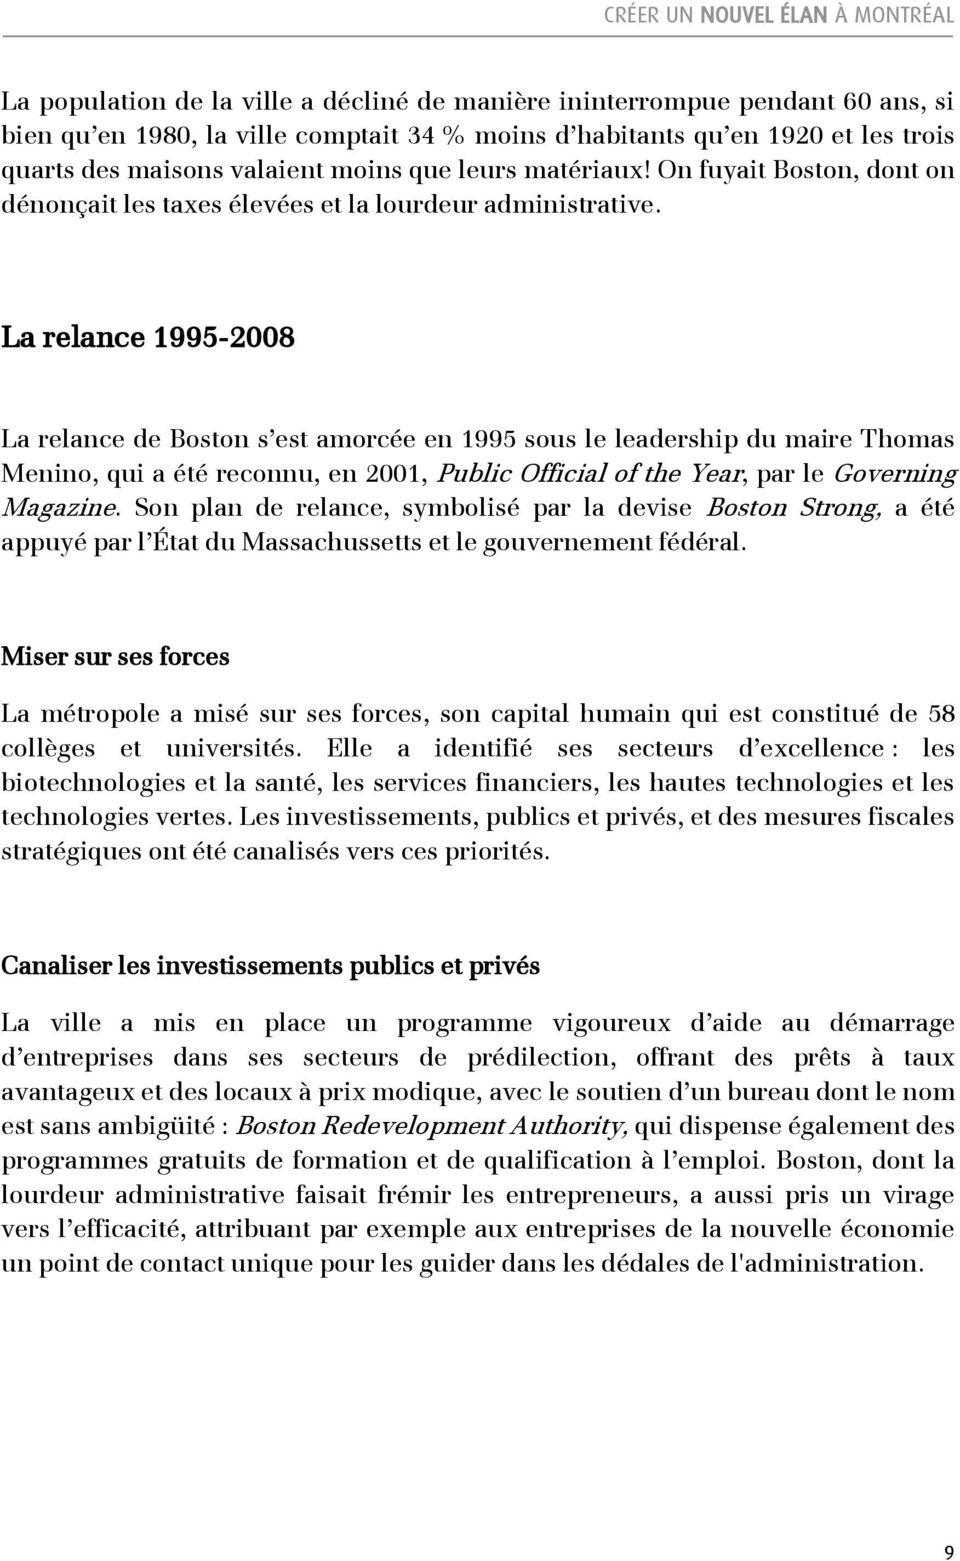 La relance 1995-2008 La relance de Boston s est amorcée en 1995 sous le leadership du maire Thomas Menino, qui a été reconnu, en 2001, Public Official of the Year, par le Governing Magazine.